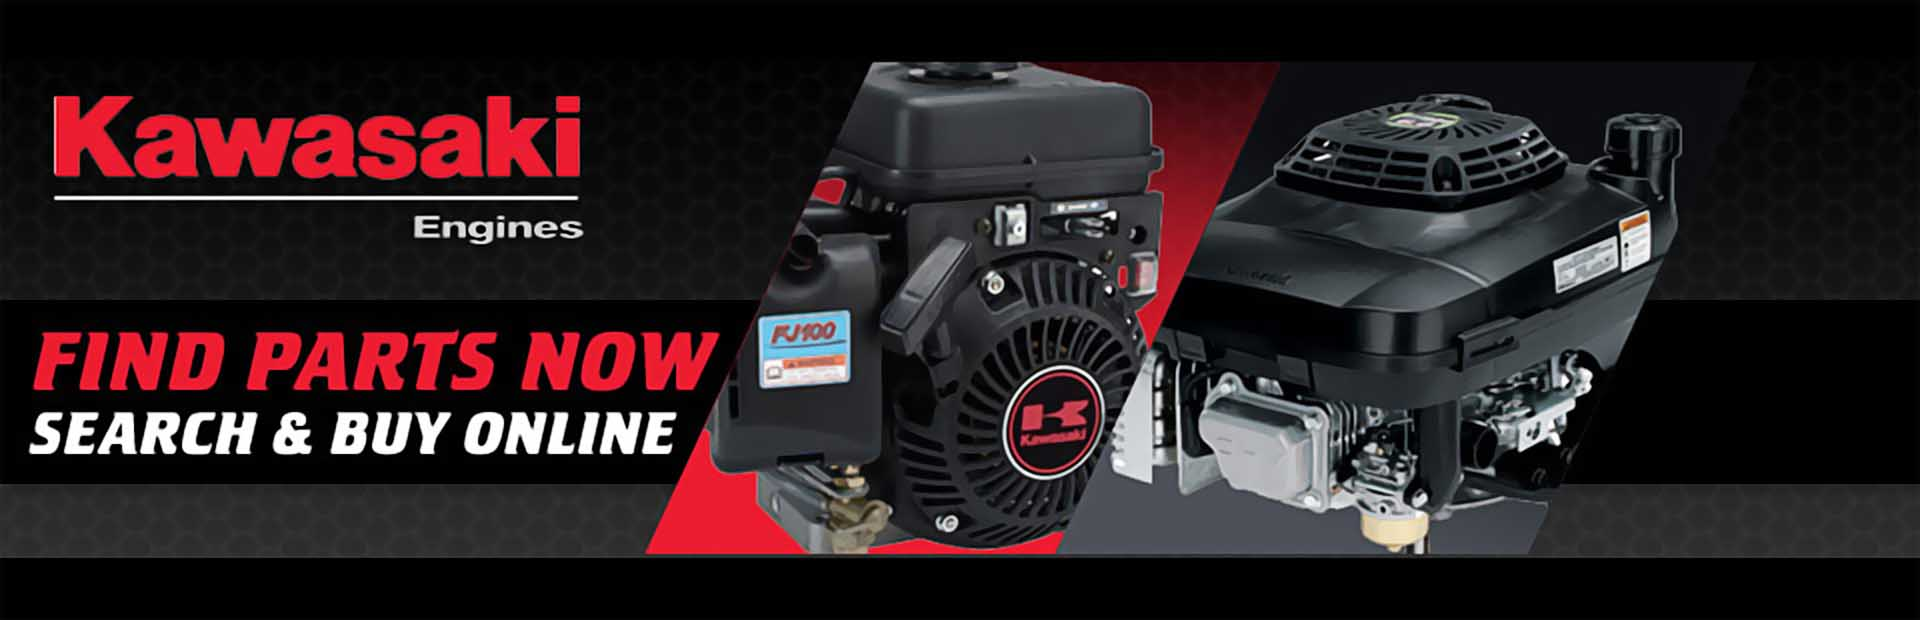 Kawasaki Engines: Click here to buy parts online.